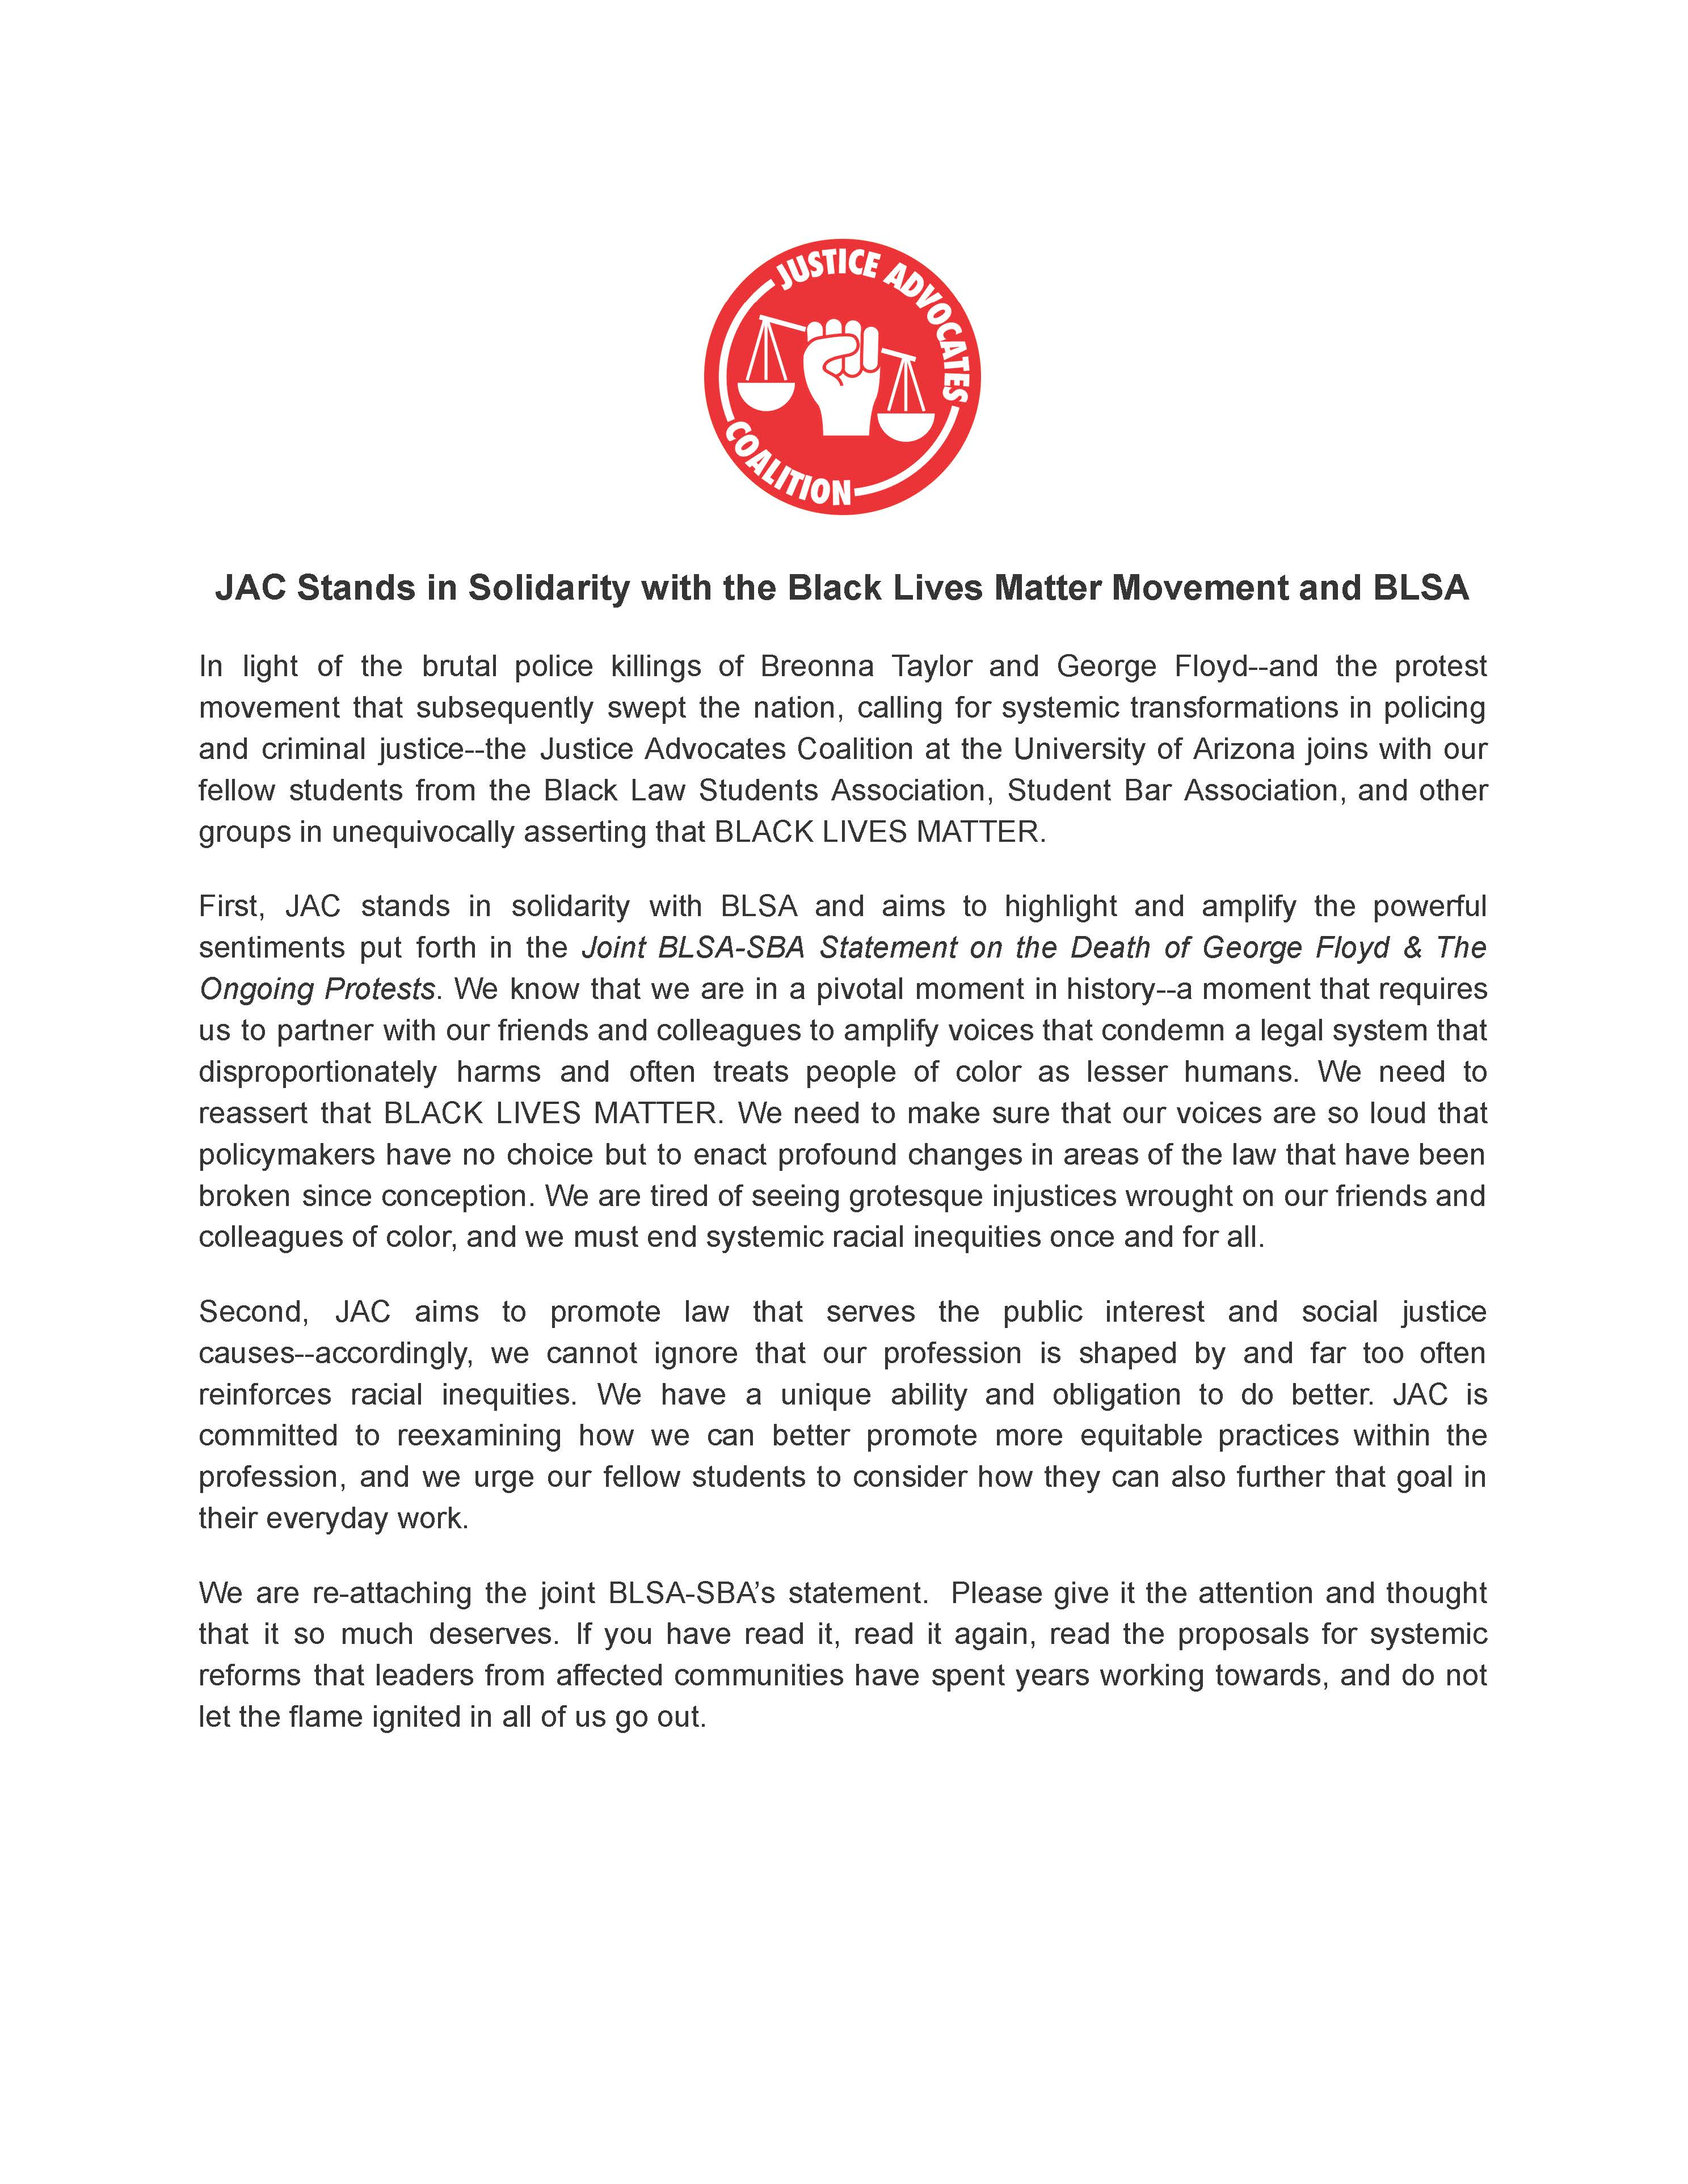 JAC Solidarity Statement